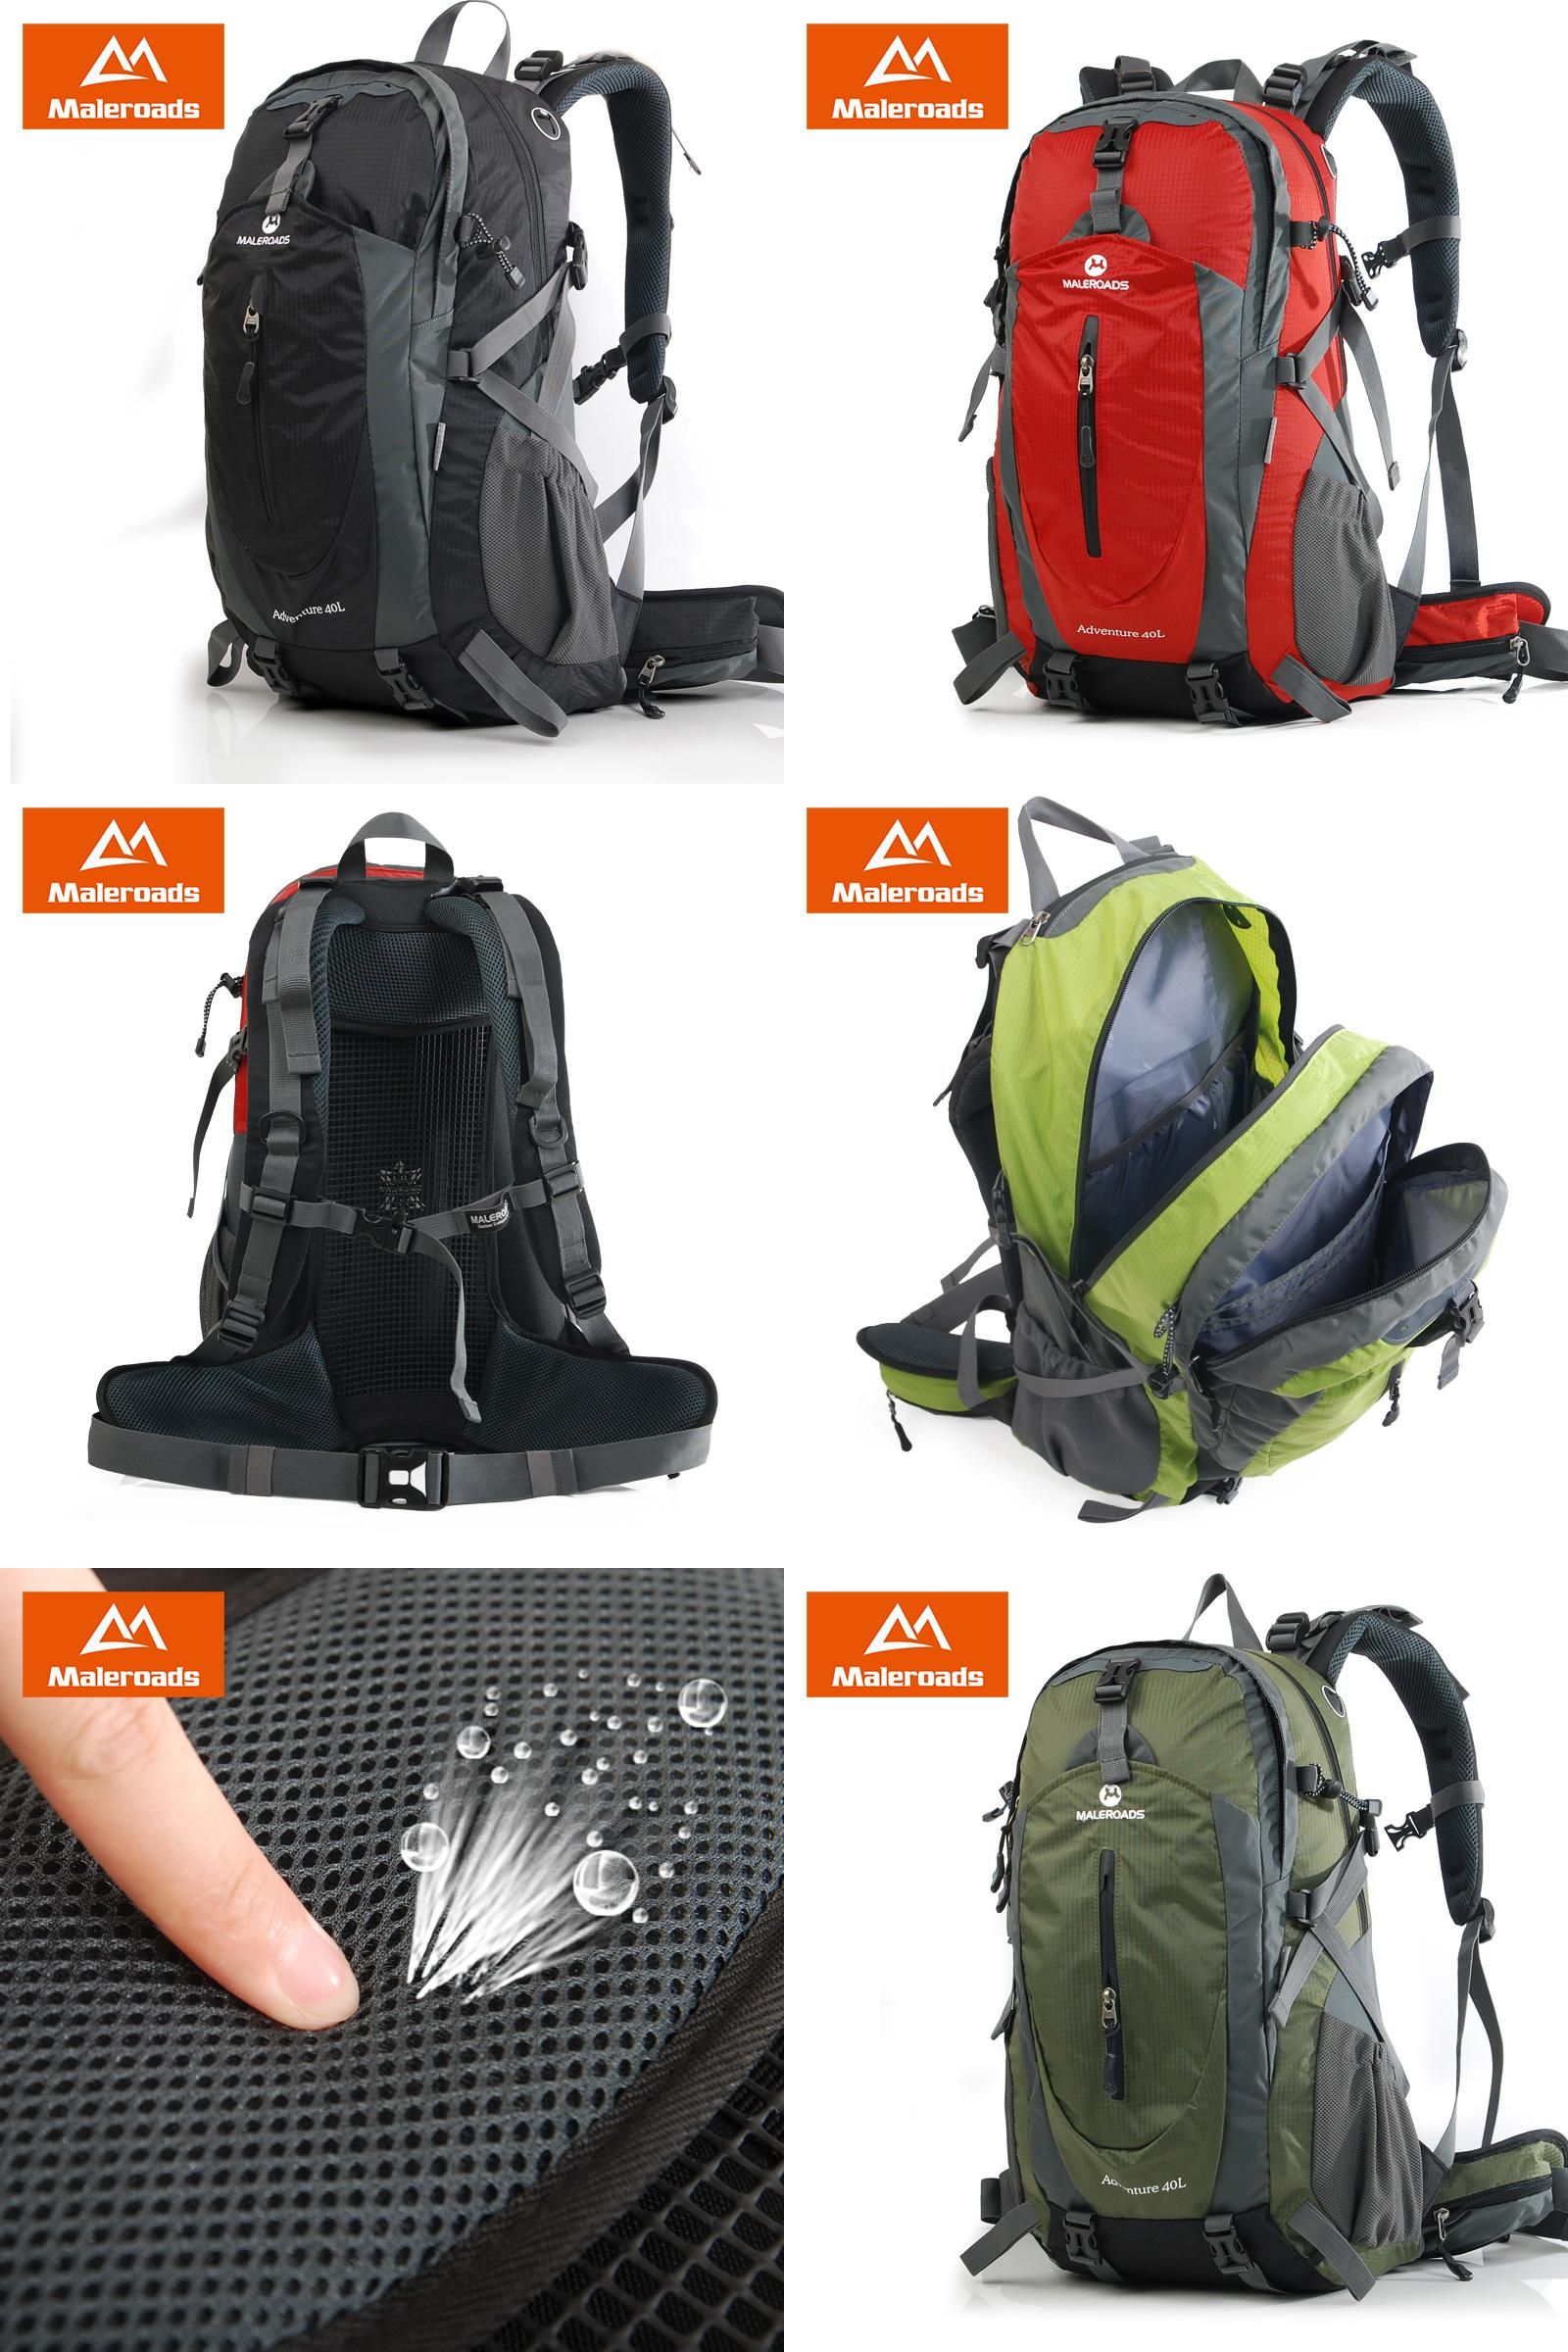 Visit to Buy] 50L Backpack Maleroads Camping Backpack Hiking ...